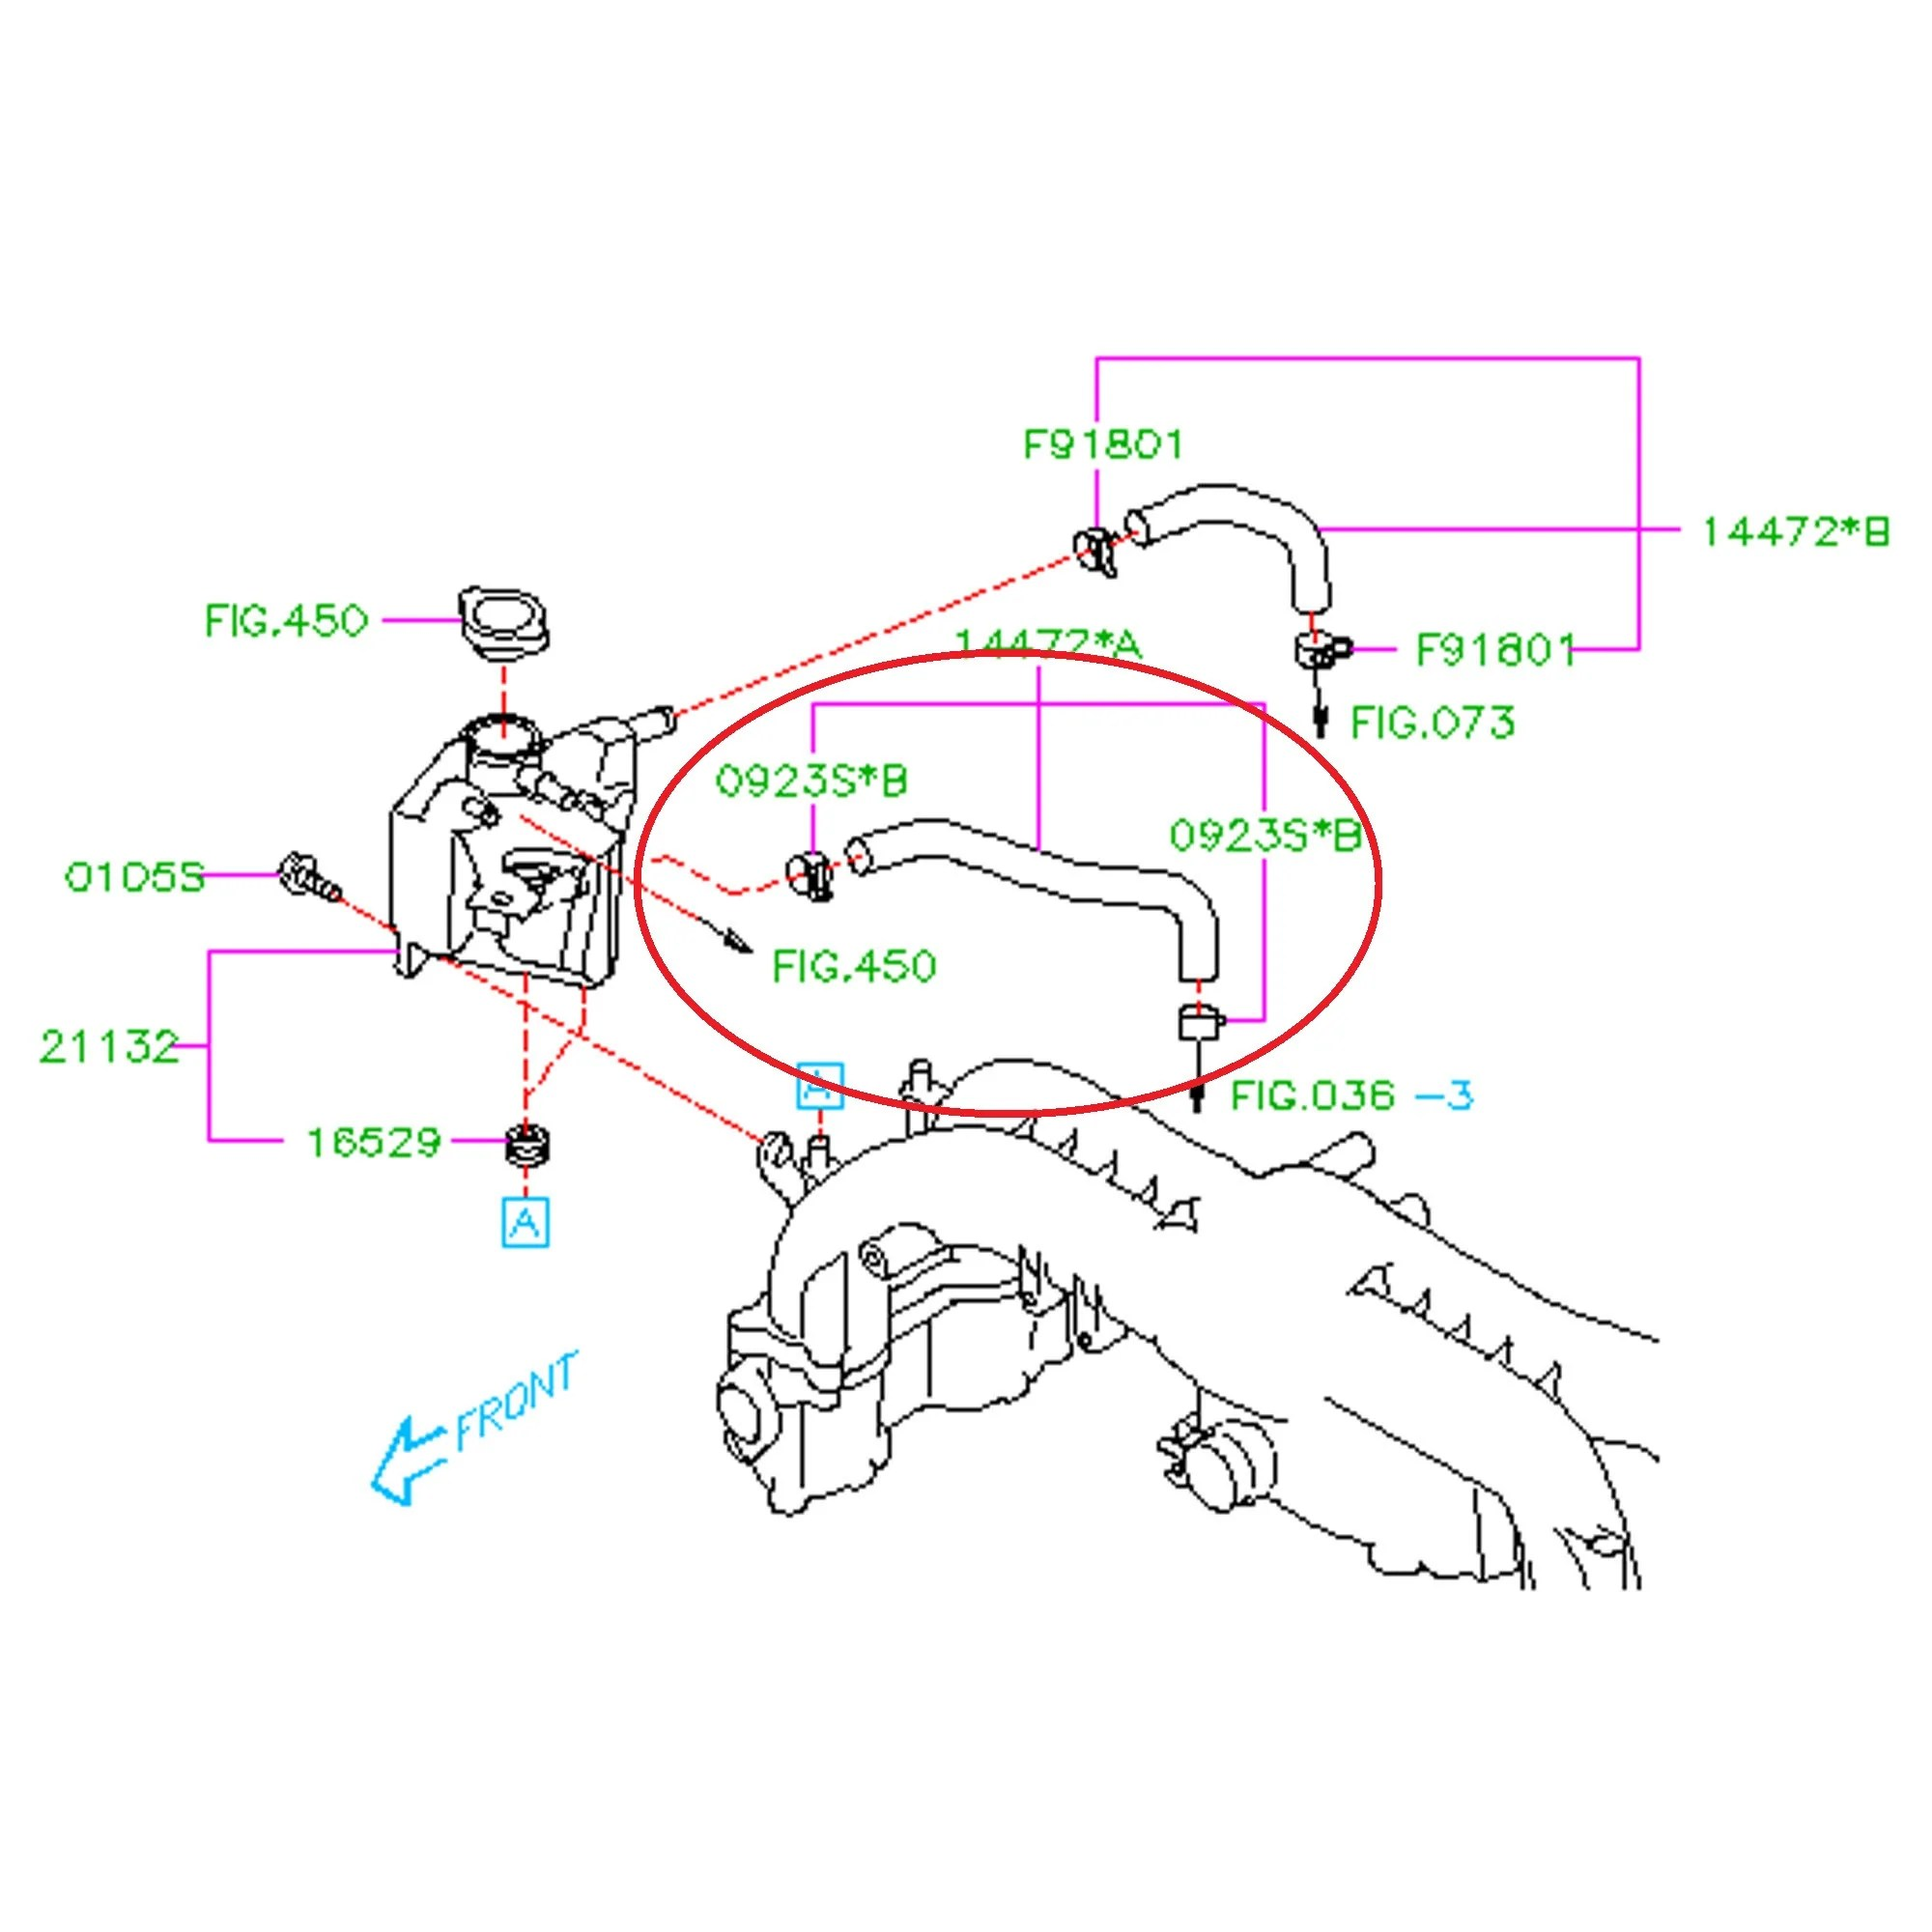 vacuum line diagram on 2004 subaru impreza wrx sti parts diagram subaru wrx wiring diagram 2002 [ 2000 x 2000 Pixel ]